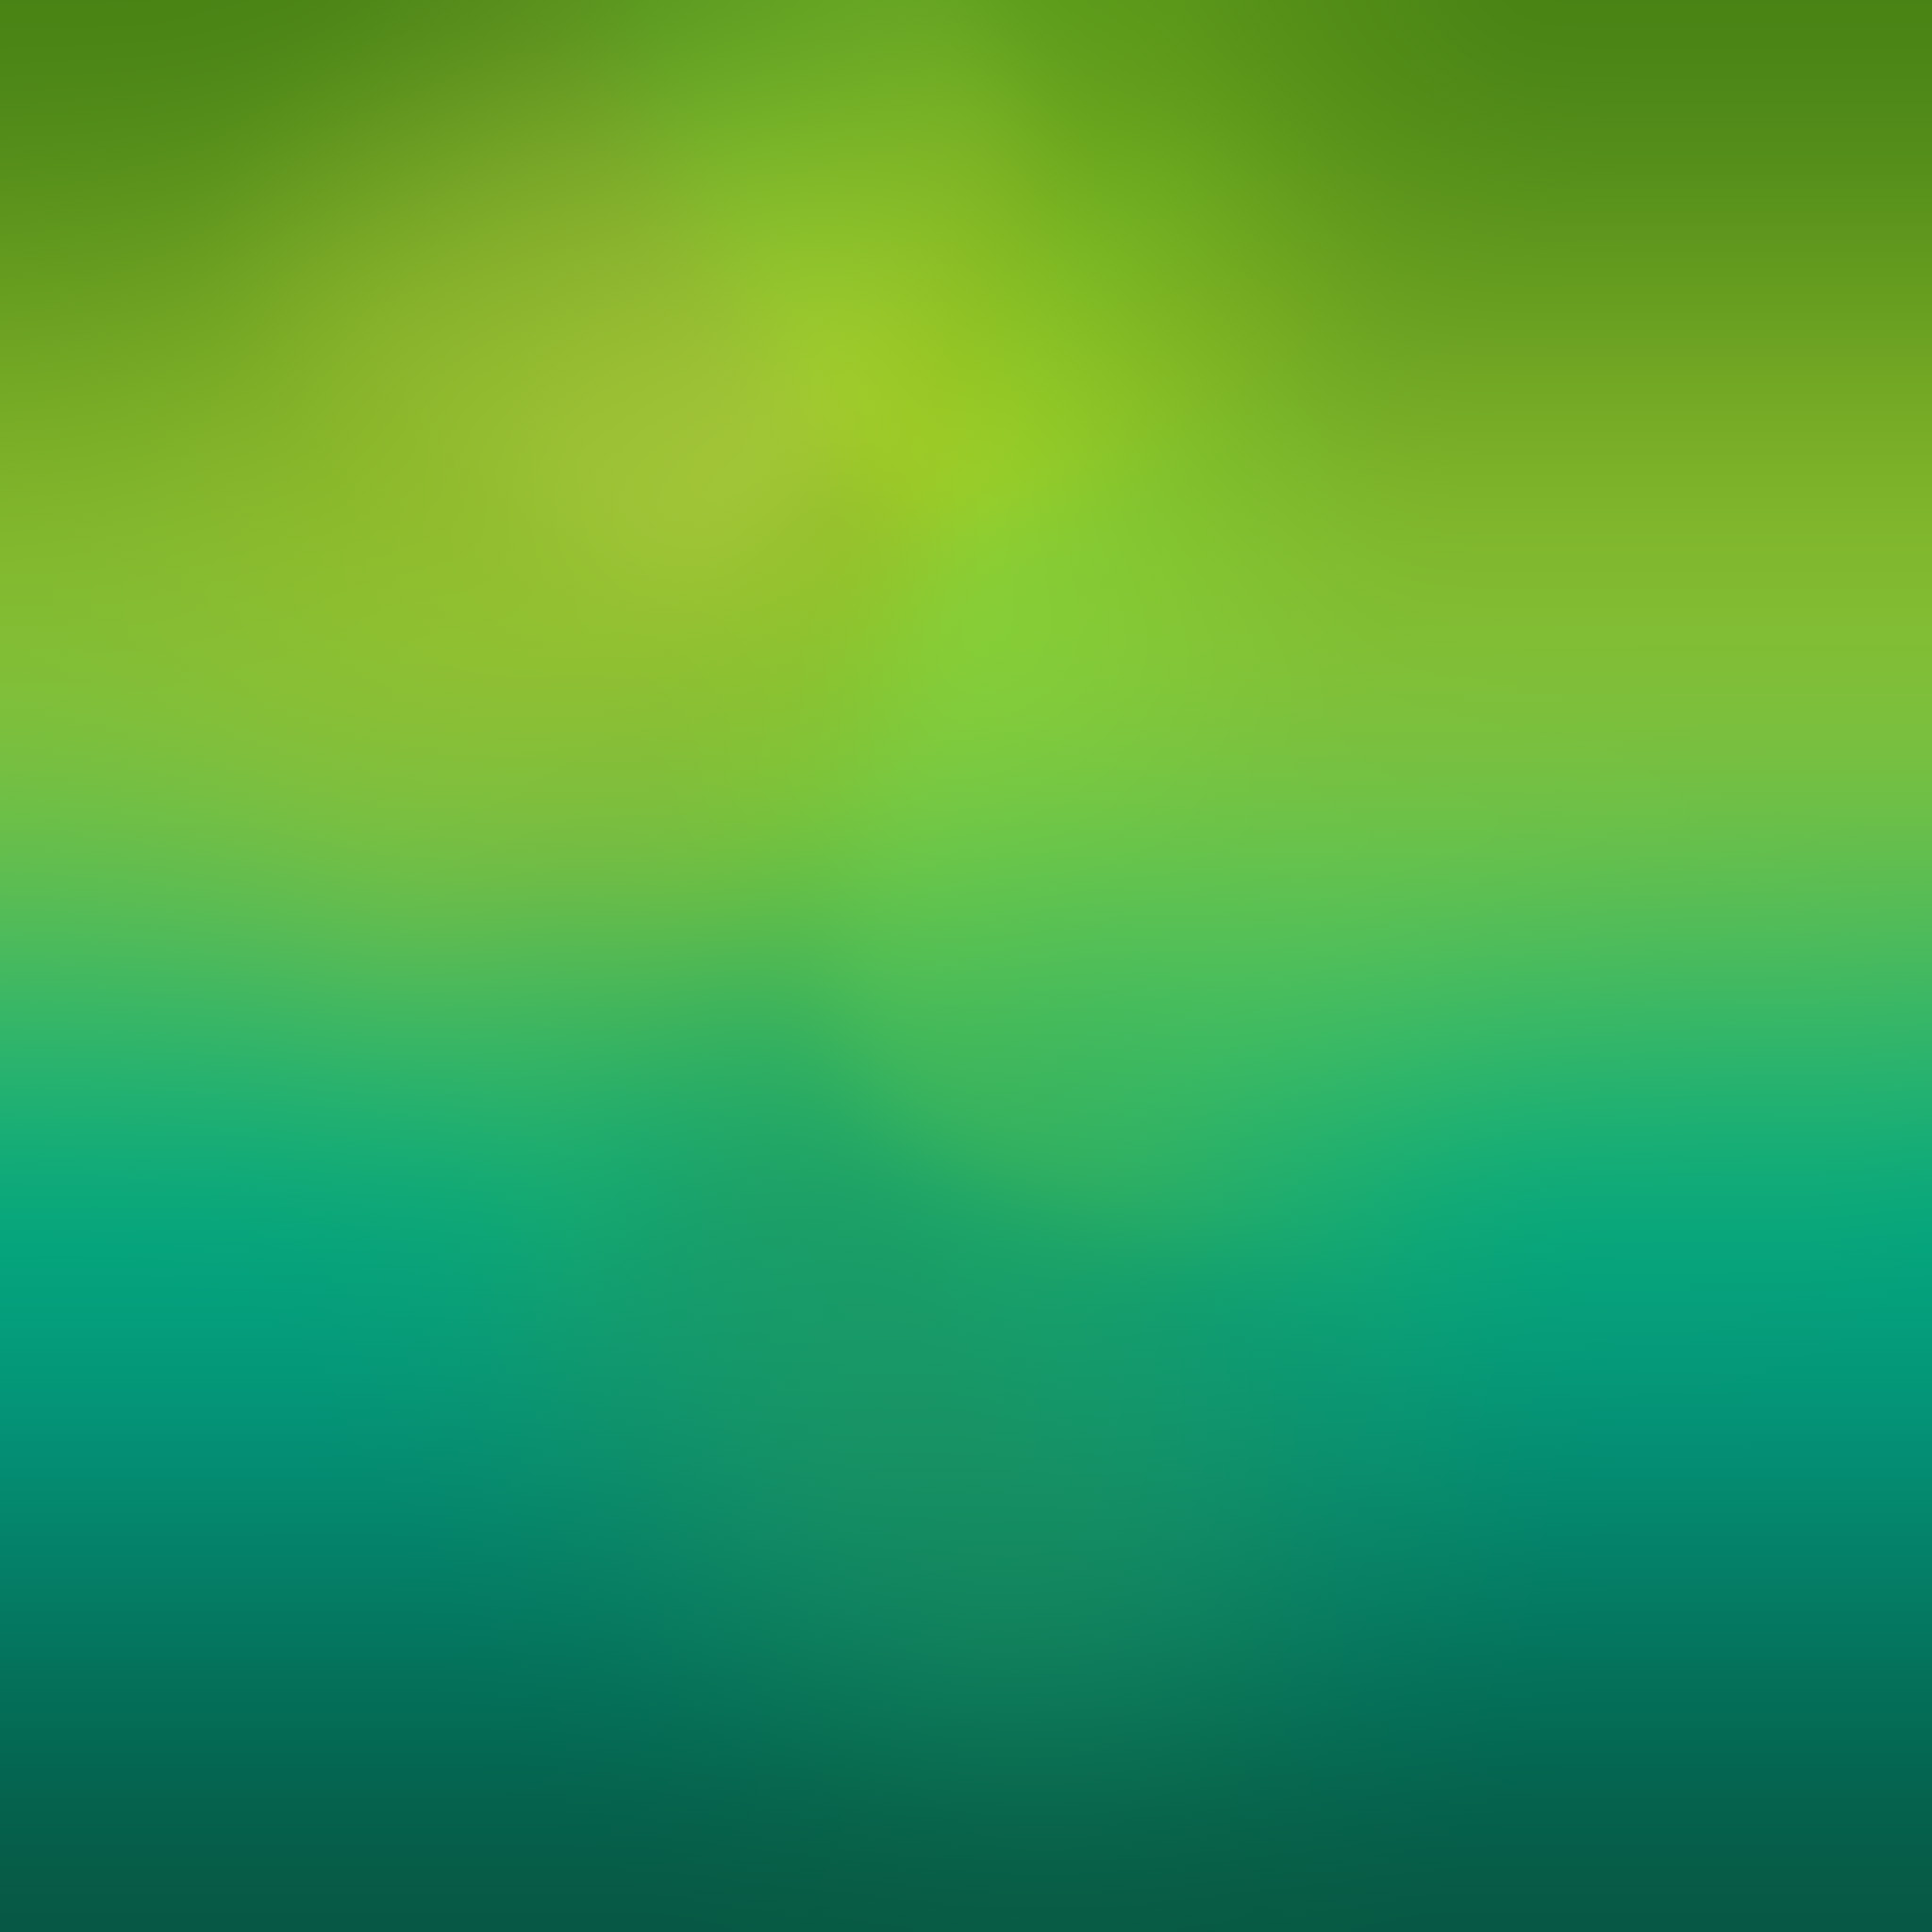 Peace And Love Iphone Wallpaper : FREEIOS7 sf67-green-yellow-peace-love-gradation-blur - parallax HD iPhone iPad wallpaper